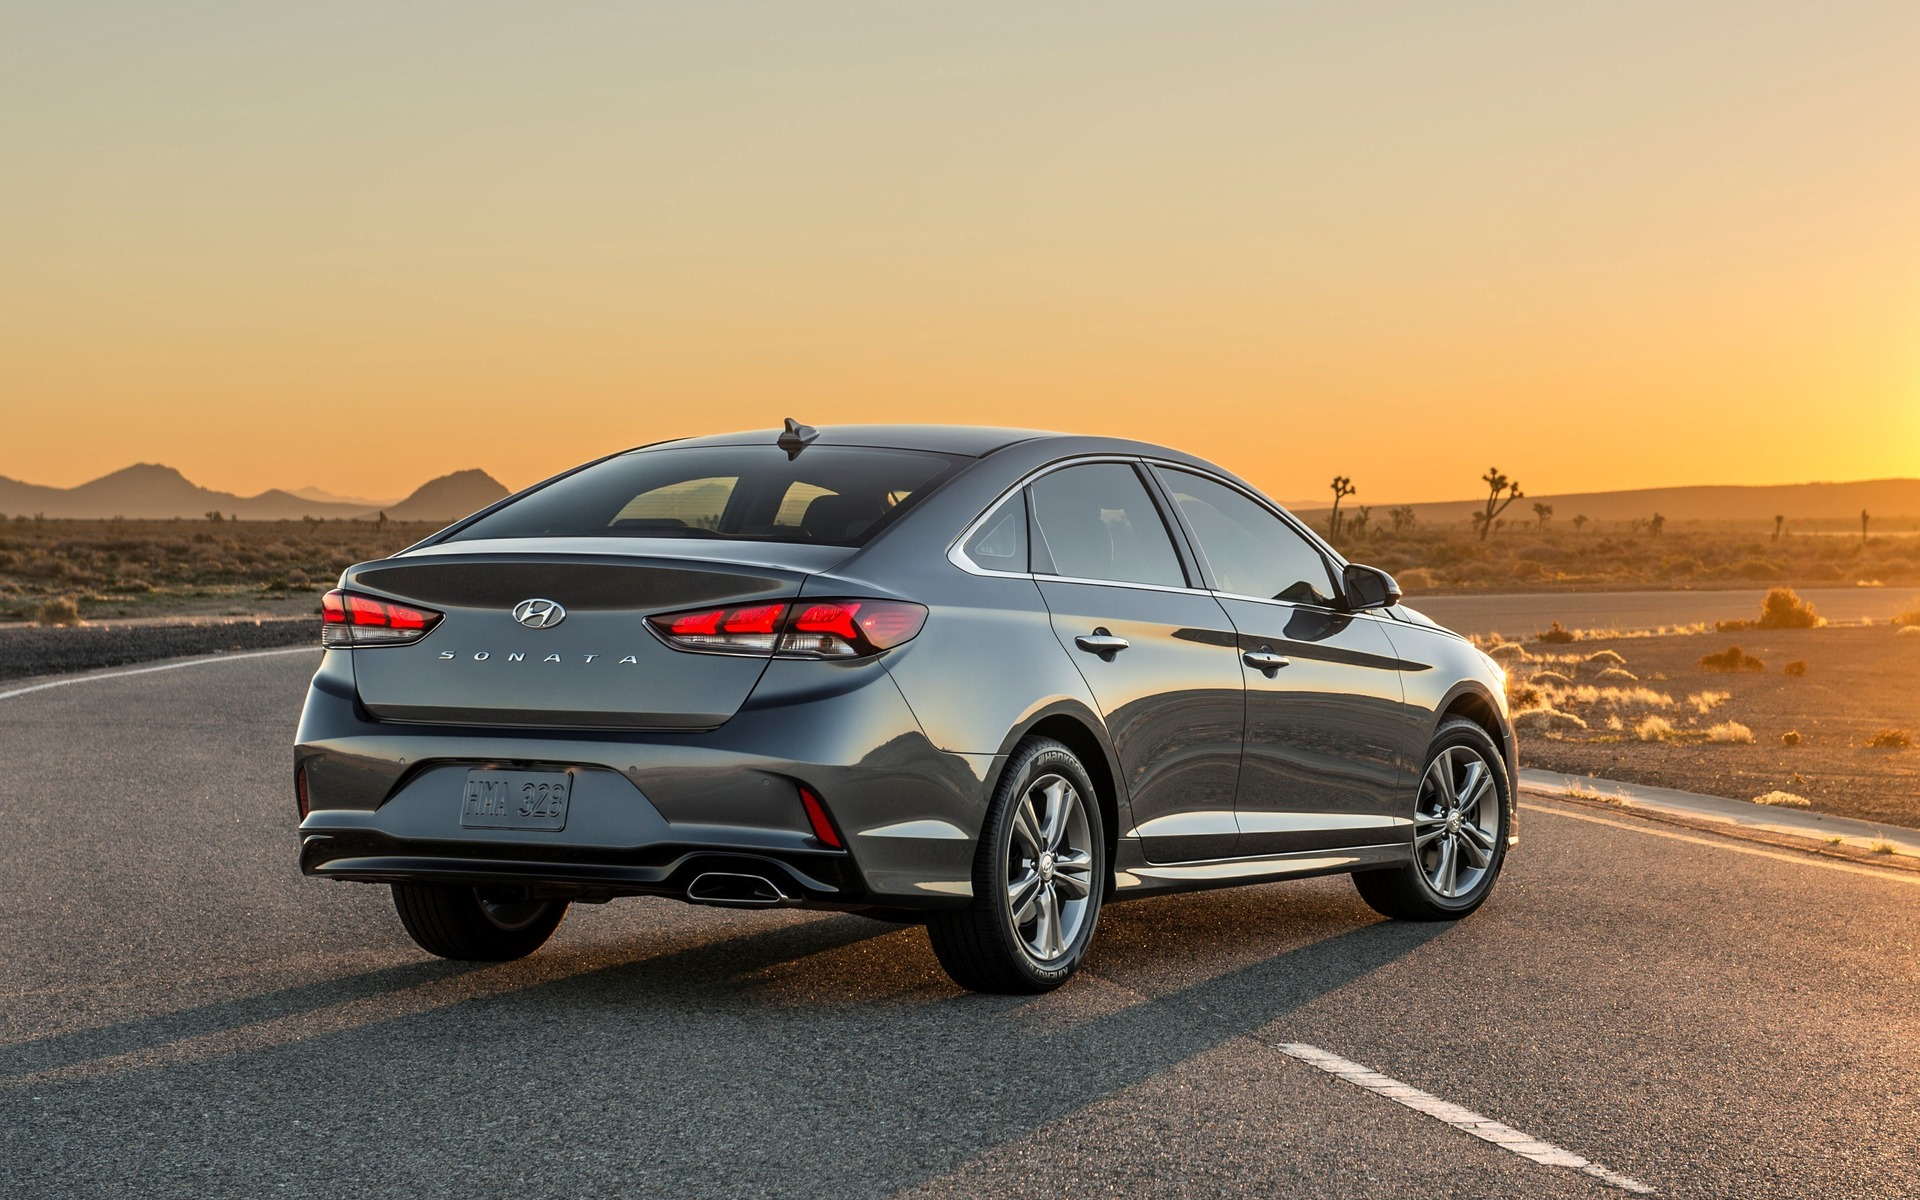 limited articles a model to hyundai the begins sport engine new liter se bar midsize segment expects with for pricing raising in sonata msrp be wheels at followed on trim volume by its